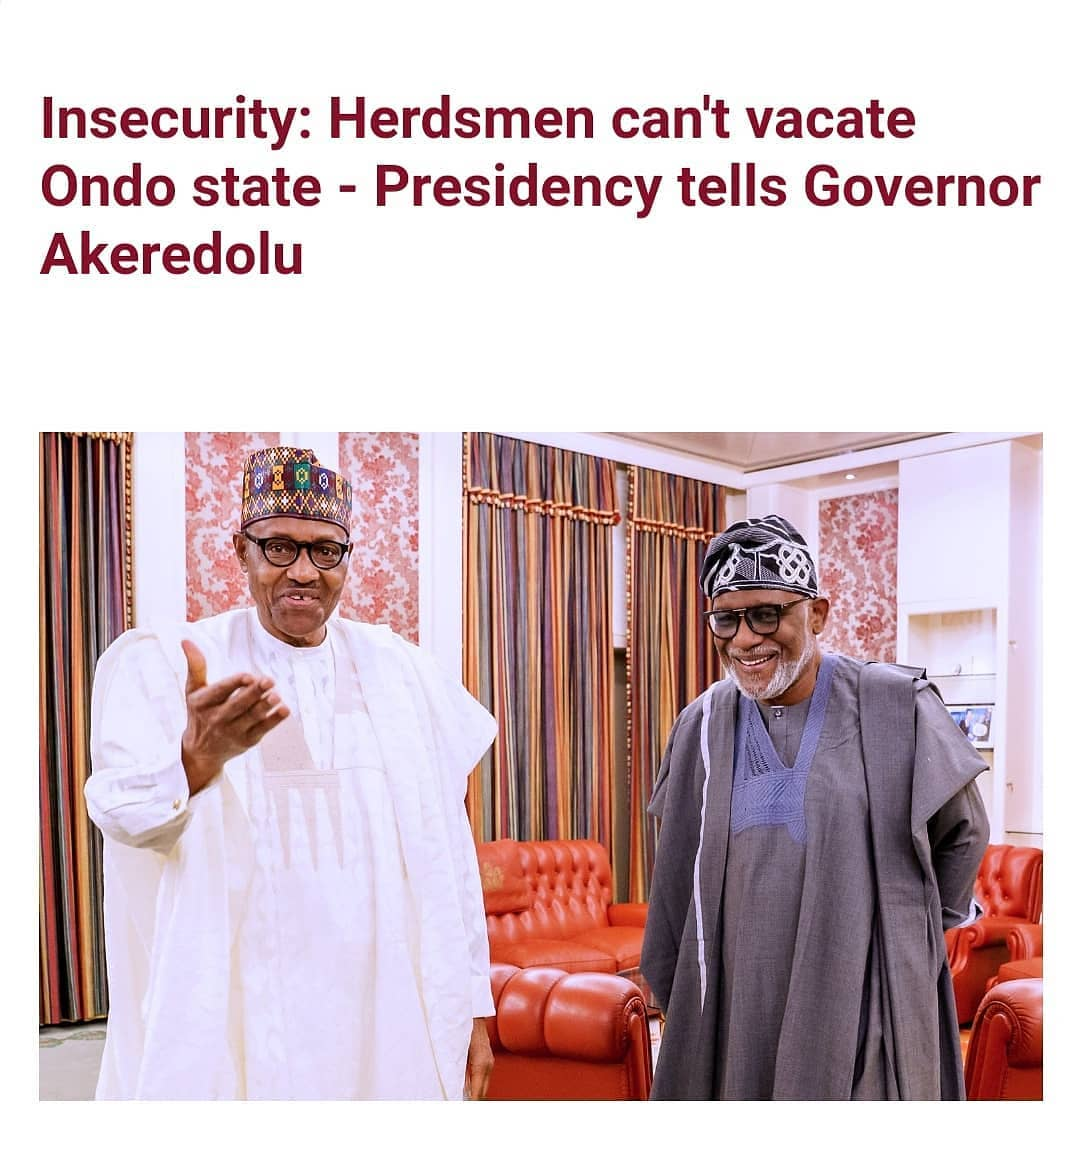 """The Presidency has reacted to Governor Rotimi Akeredolu's ultimatum for herdsmen to leave forest reserves in Ondo state within 7 days.   Presidential spokesman, Garba Shehu in a statement released on Tuesday January 19 stated that  Akeredolu being a senior lawyer would be the least expected to unilaterally expel thousands of herders who have lived all their lives in the state, on account of the infiltration of the forests by criminals.  The presidency which noted that kidnapping, banditry and rustling are crimes no matter the motive or who is involved, added that it is atavistic and cruel to define crime from the nameplates.   The statement read;   STATE HOUSE PRESS RELEASE  IN TACKLING CRIME, ONDO STATE GOVERNMENT WILL NOT ACT OUTSIDE THE CONSTITUTION  The Presidency has been keenly monitoring events occurring in Ondo State and the """"orders"""" by the government of the state, """"asking herders to vacate the forests in seven days.""""  What is clearly emerging, is a lack of consistency in messaging which in turn leads to various contradictions regarding accuracy and the intent behind the message. There is little to be said other than to call for restraint on both sides and urge the state government and the leadership of the Fulani communities to continue their dialogue for a good understanding that will bring to an urgent end, the nightmarish security challenges facing the state.  Governor Rotimi Akeredolu, a seasoned lawyer, Senior Advocate of Nigeria and indeed, a former President of the Nigerian Bar Association, NBA, has fought crime in his state with passion and commitment, greater sensitivity and compassion for the four years he has run its affairs and, in our view, will be the least expected to unilaterally oust thousands of herders who have lived all their lives in the state on account of the infiltration of the forests by criminals.  If this were to be the case, rights groups will be right in expressing worries that the action could set off a chain of events which th"""